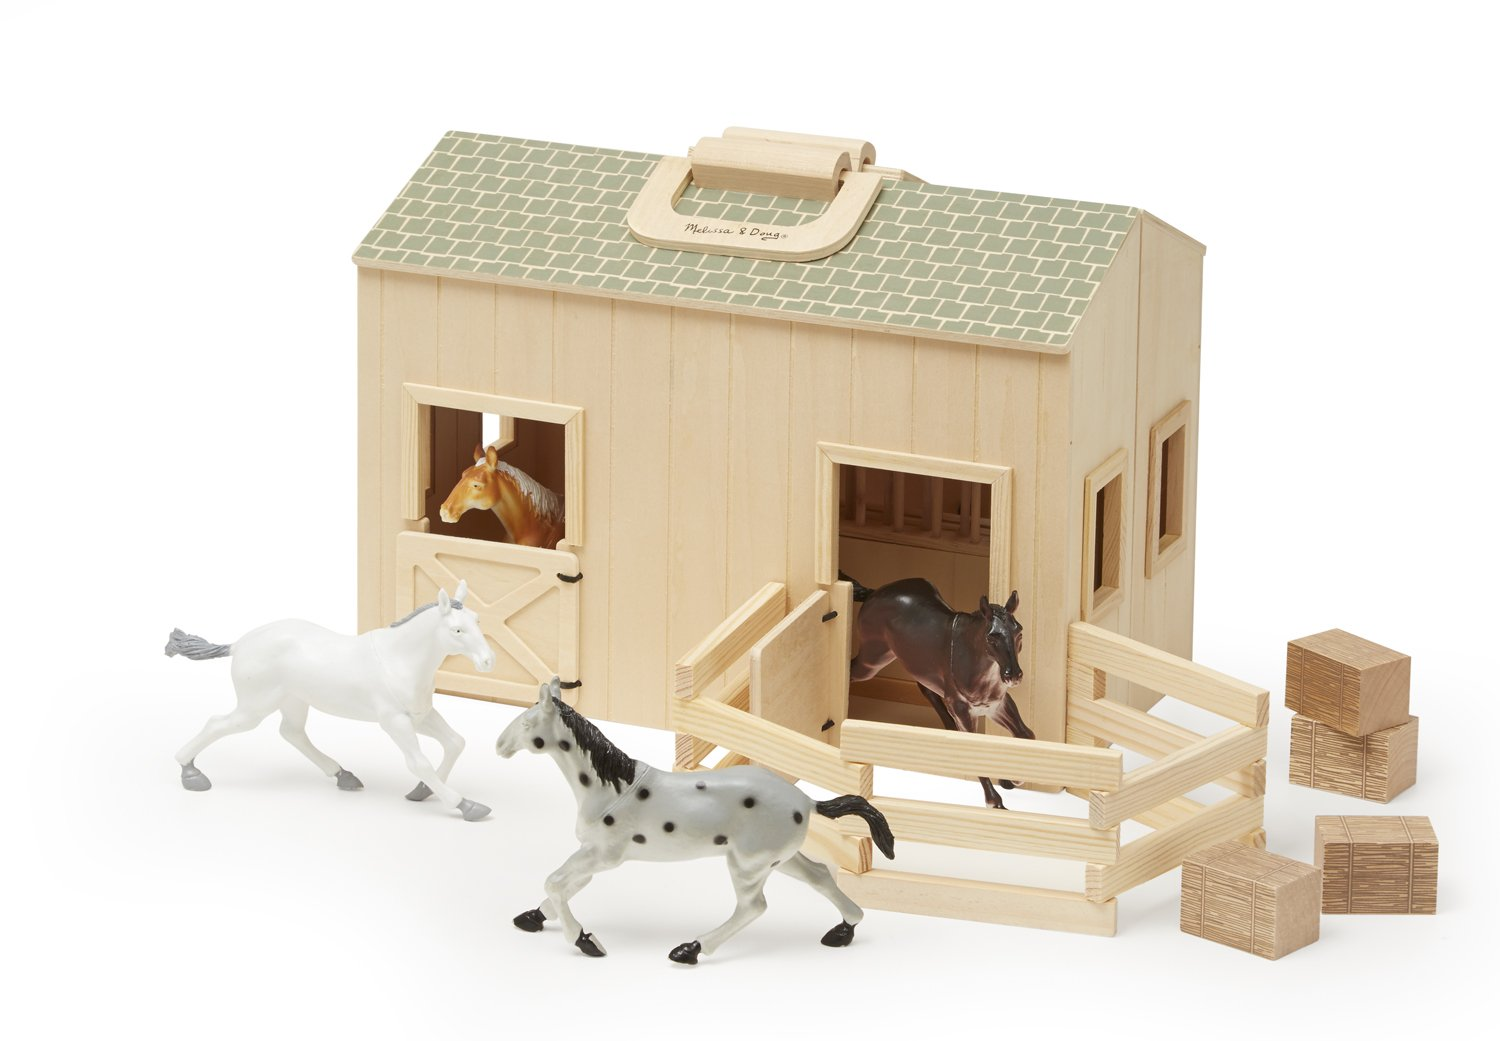 Amazon.com: Melissa & Doug Fold and Go Wooden Horse Stable ...